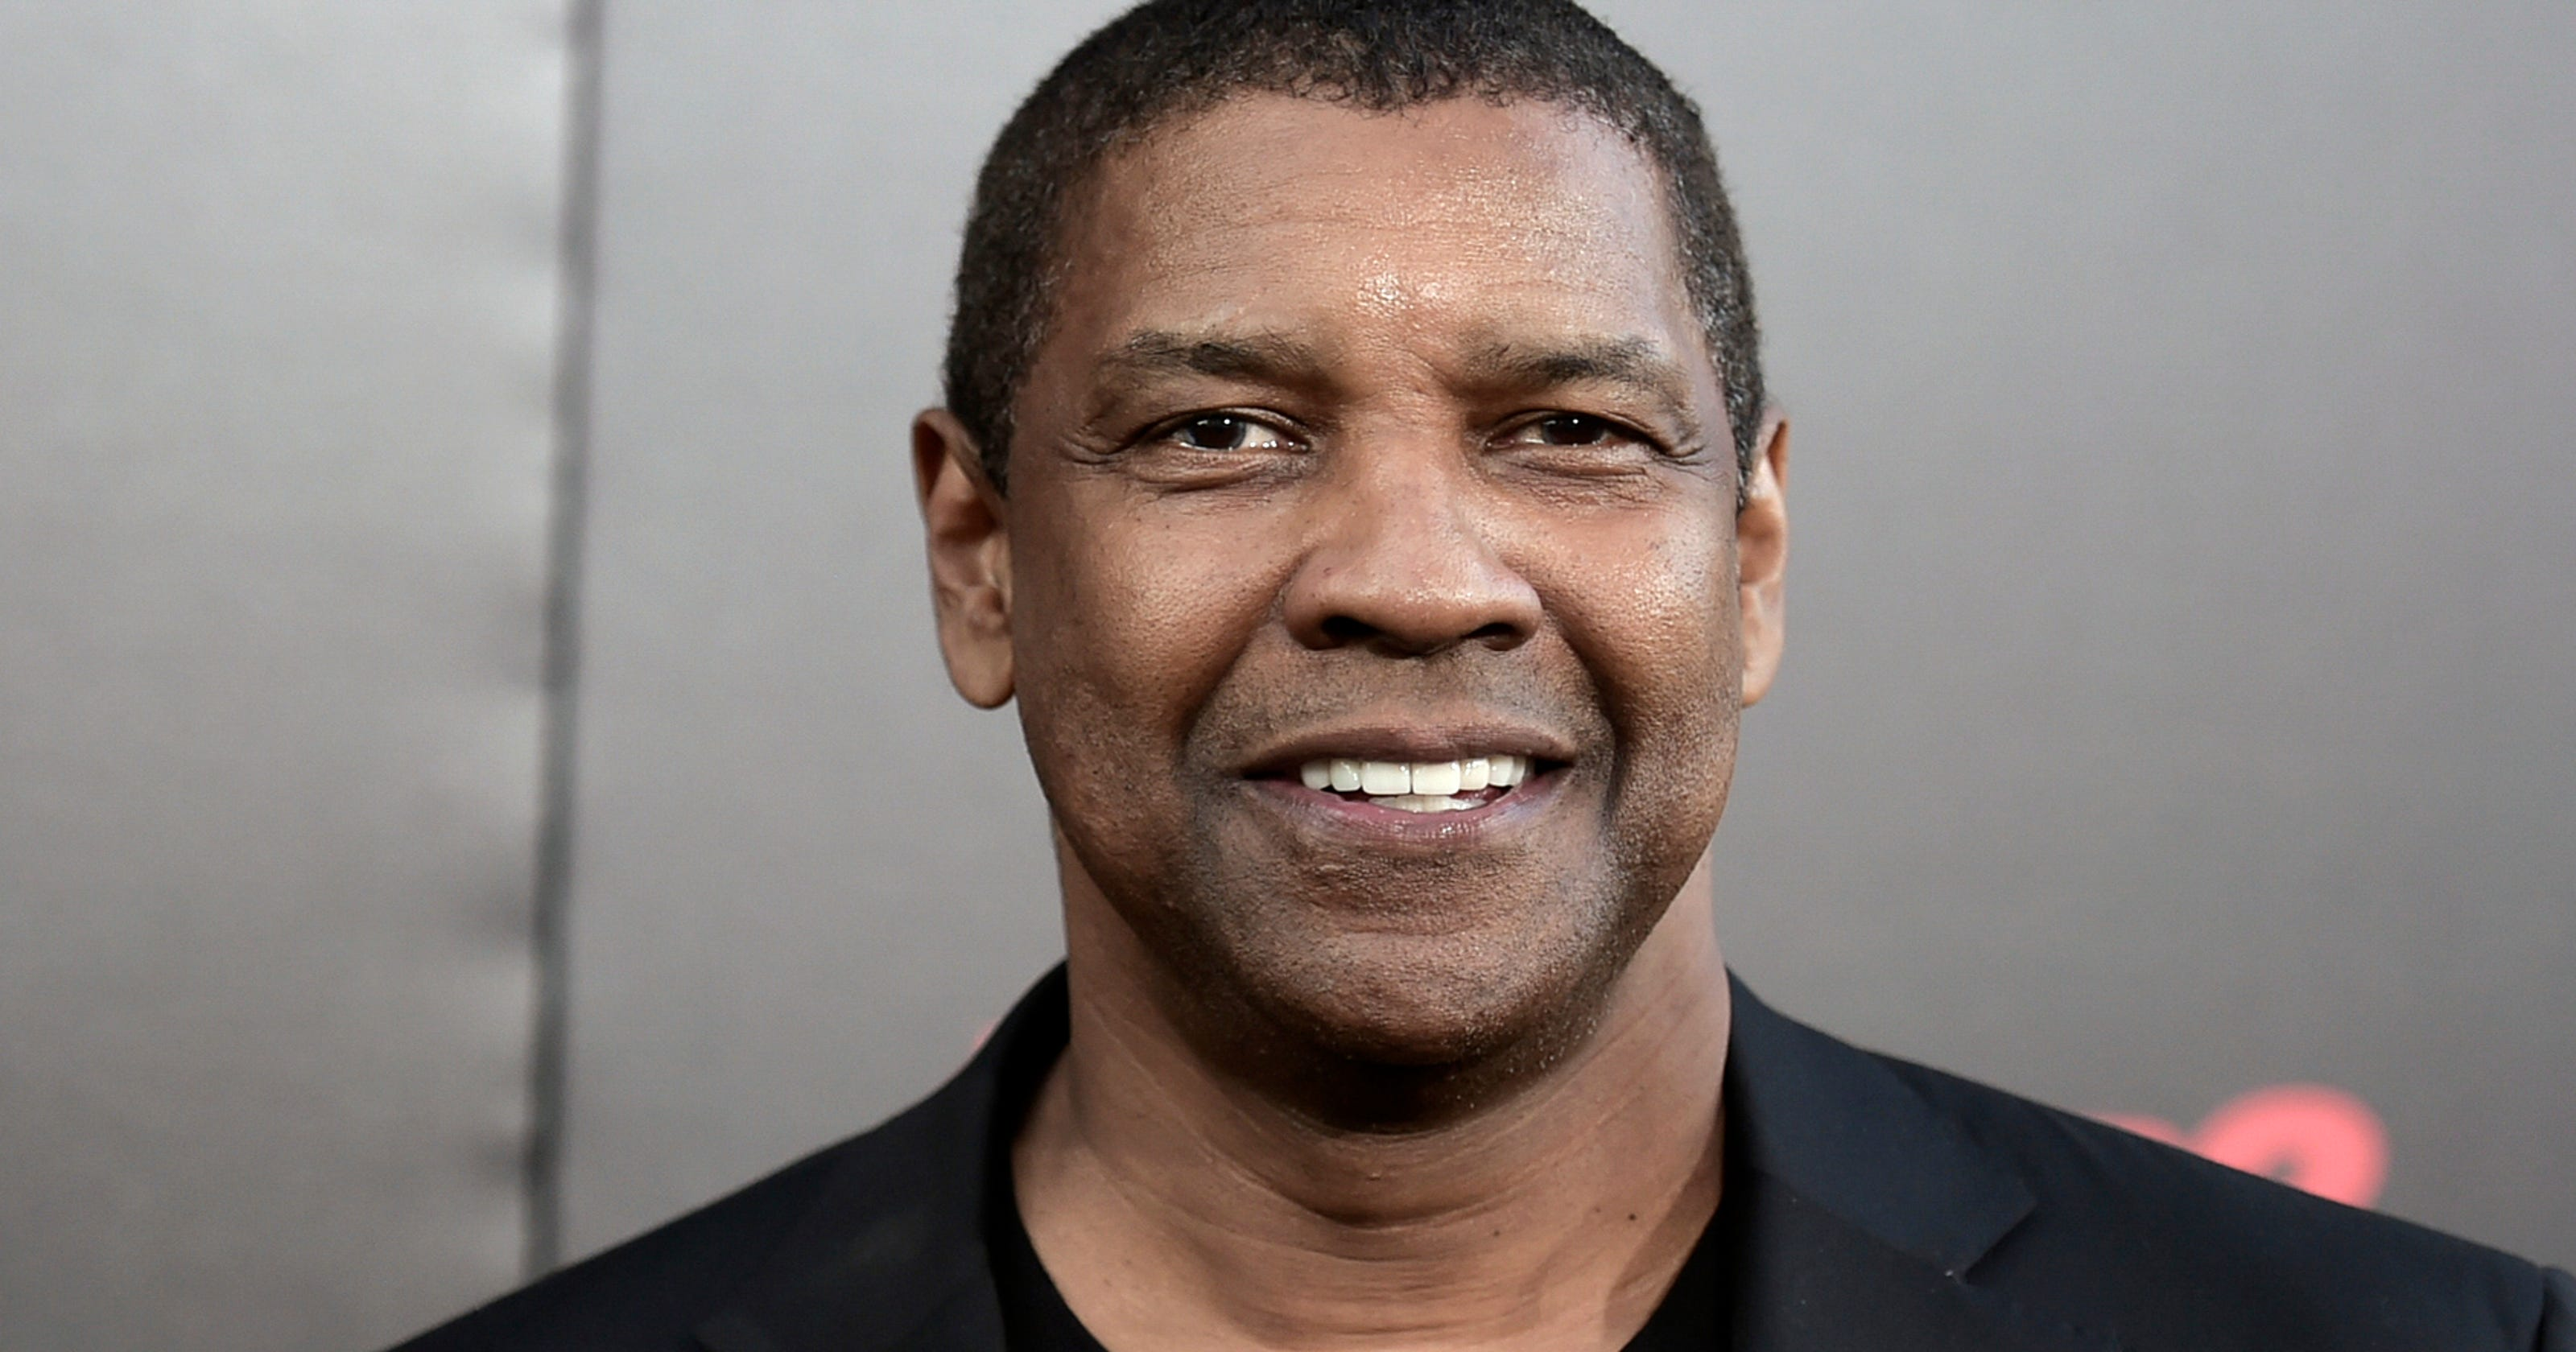 Equalizer 2's Denzel Washington avoids fights: 'I can smell nonsense'